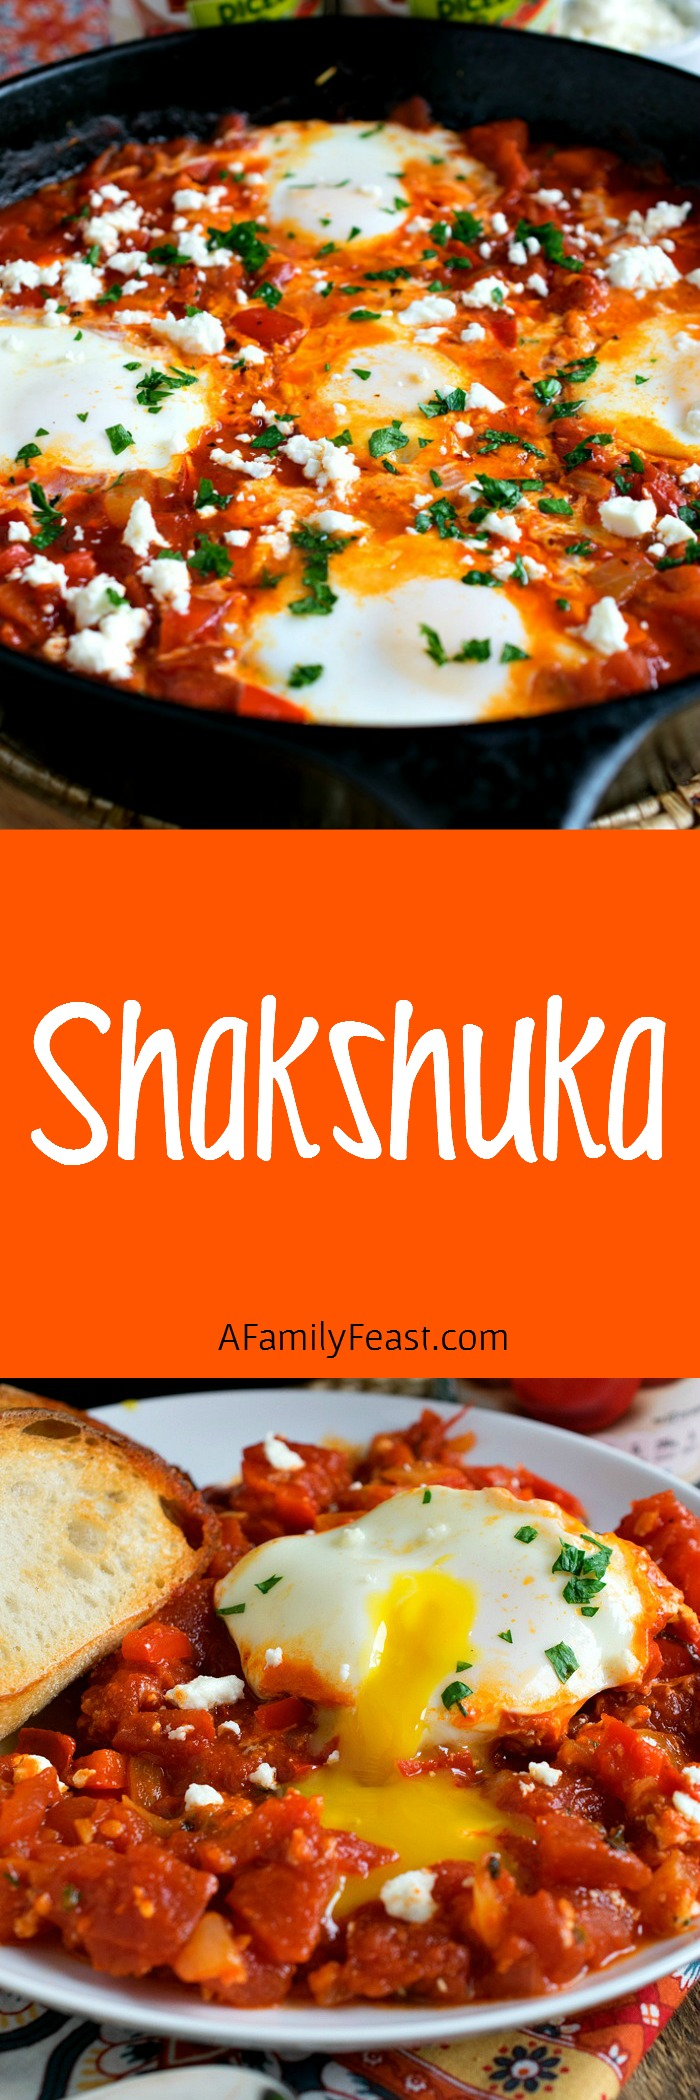 Shakshuka - Ready in just 30 minutes, this wonderful egg and spicy tomato sauce dish is delicious any time of the day!